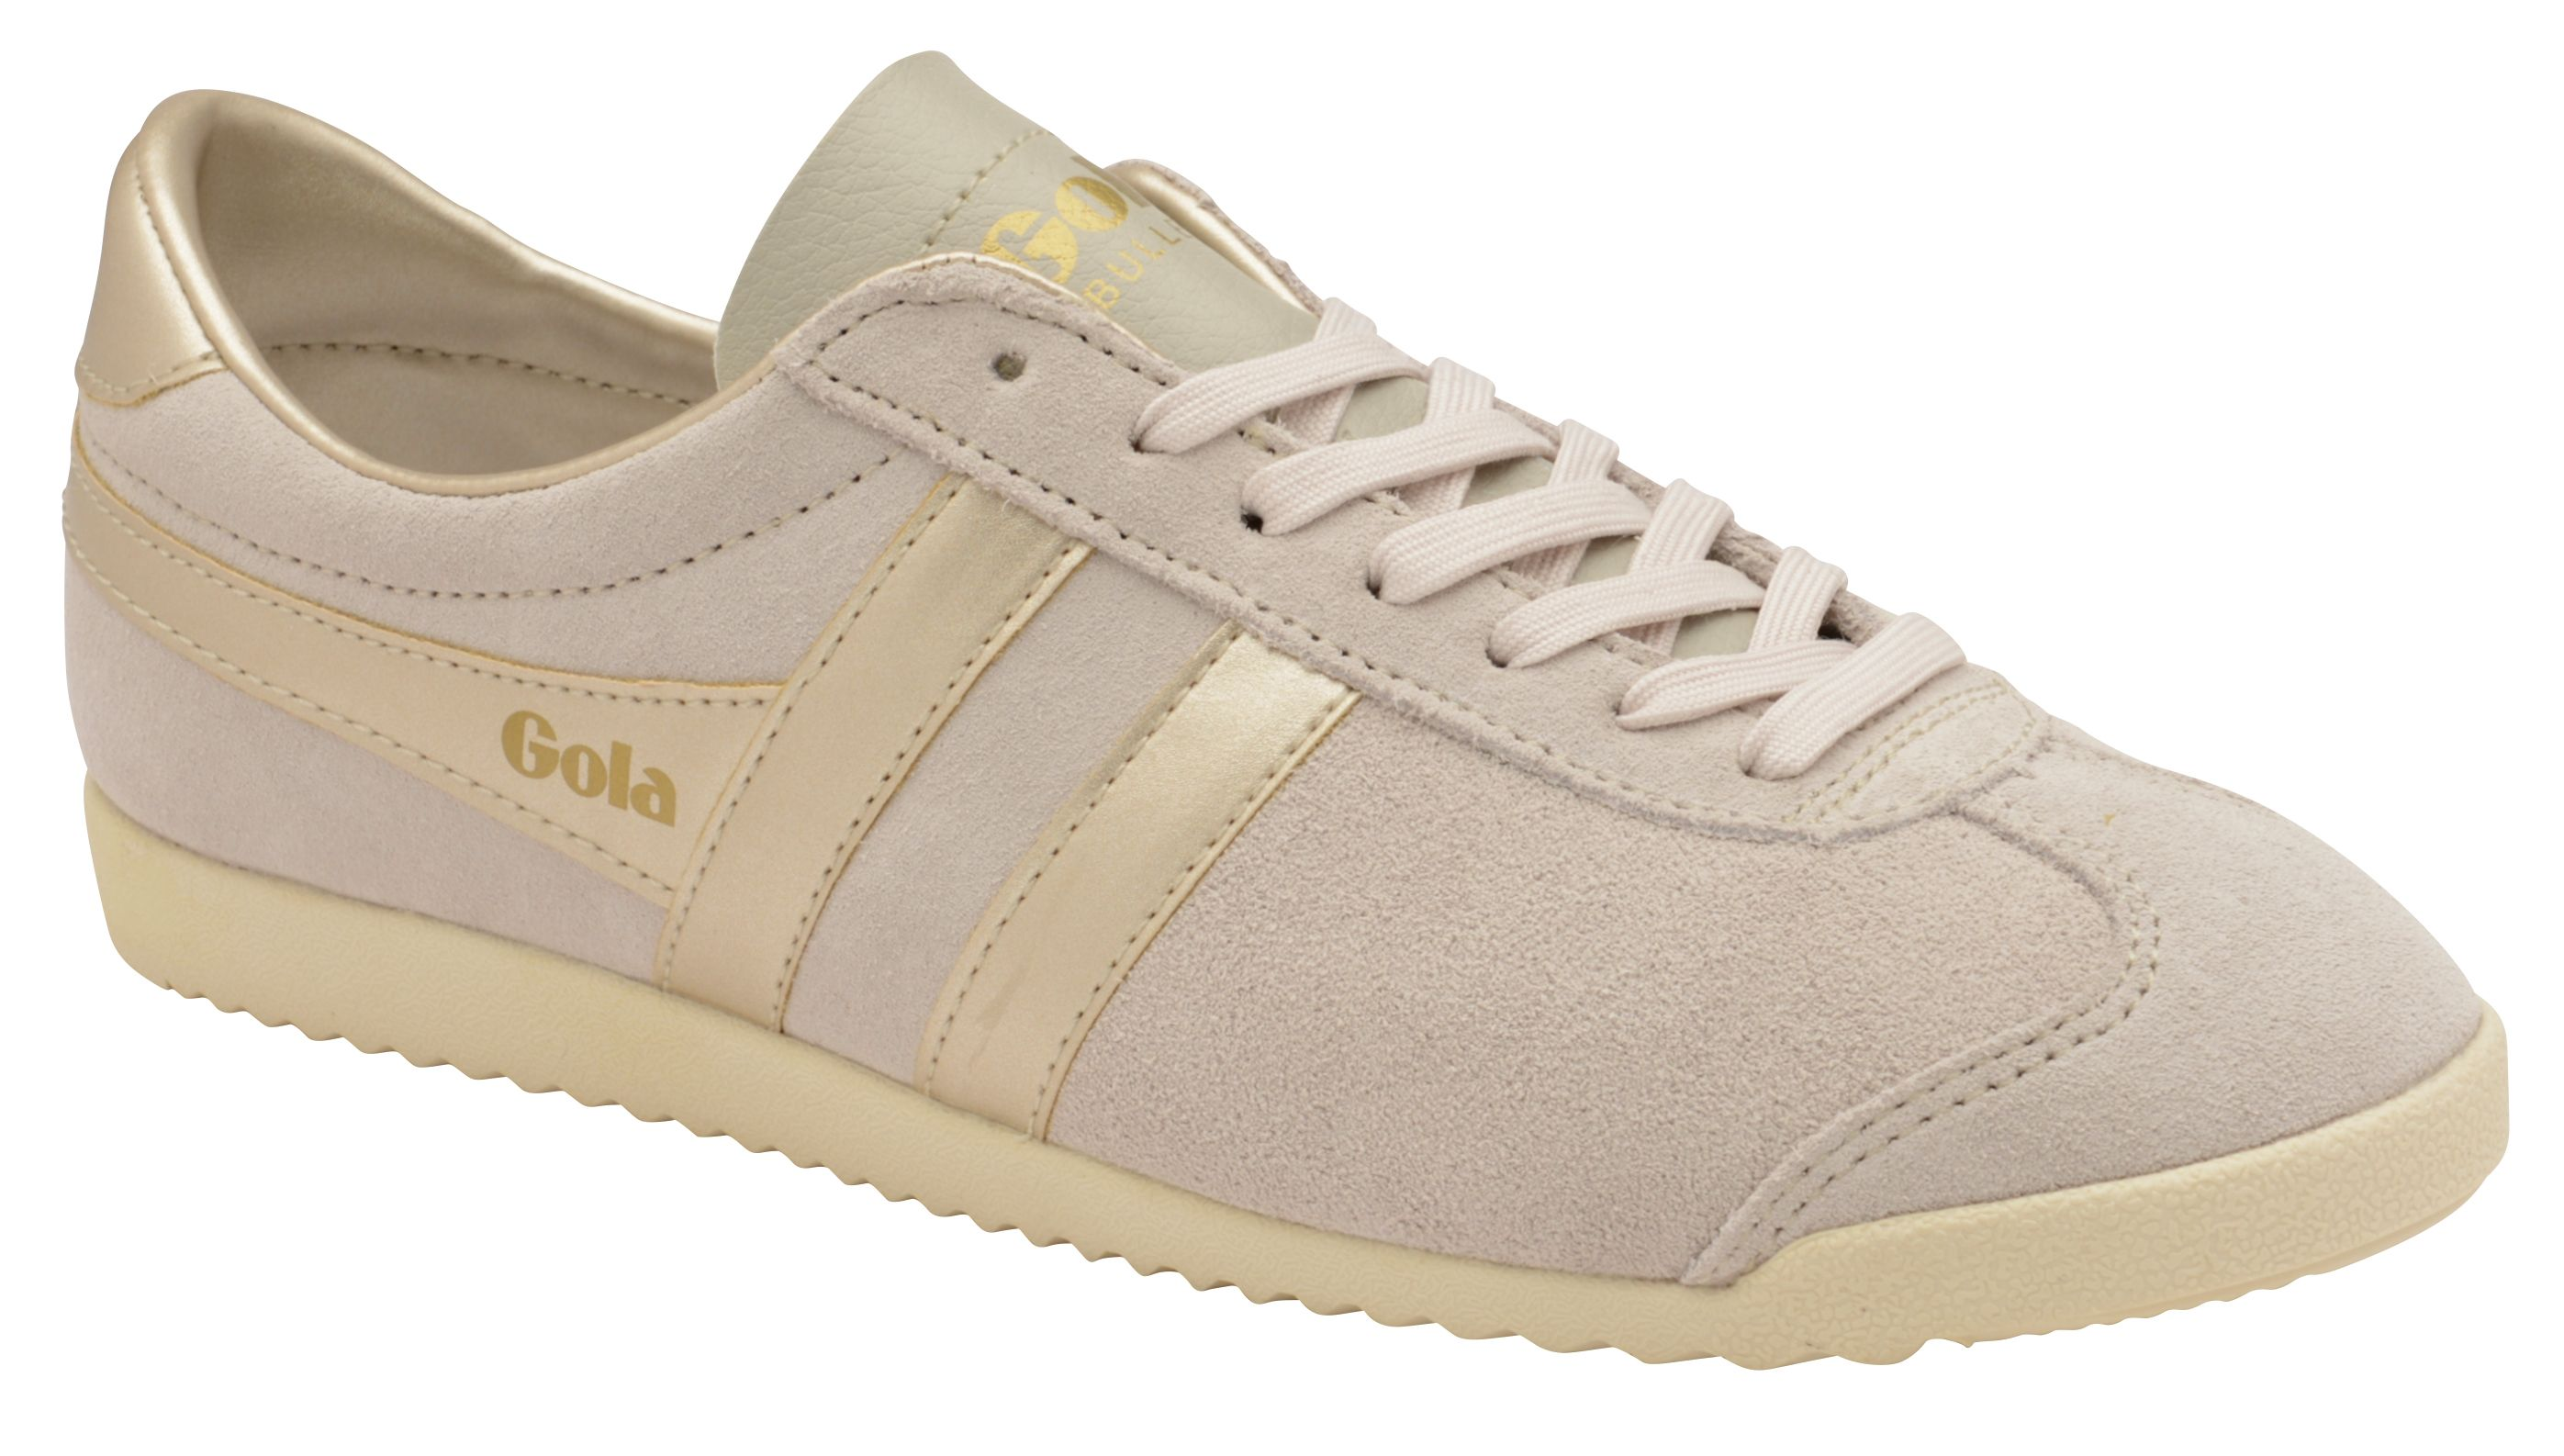 Gola Bullet Pearl Lace Up Trainers, Rose Gold